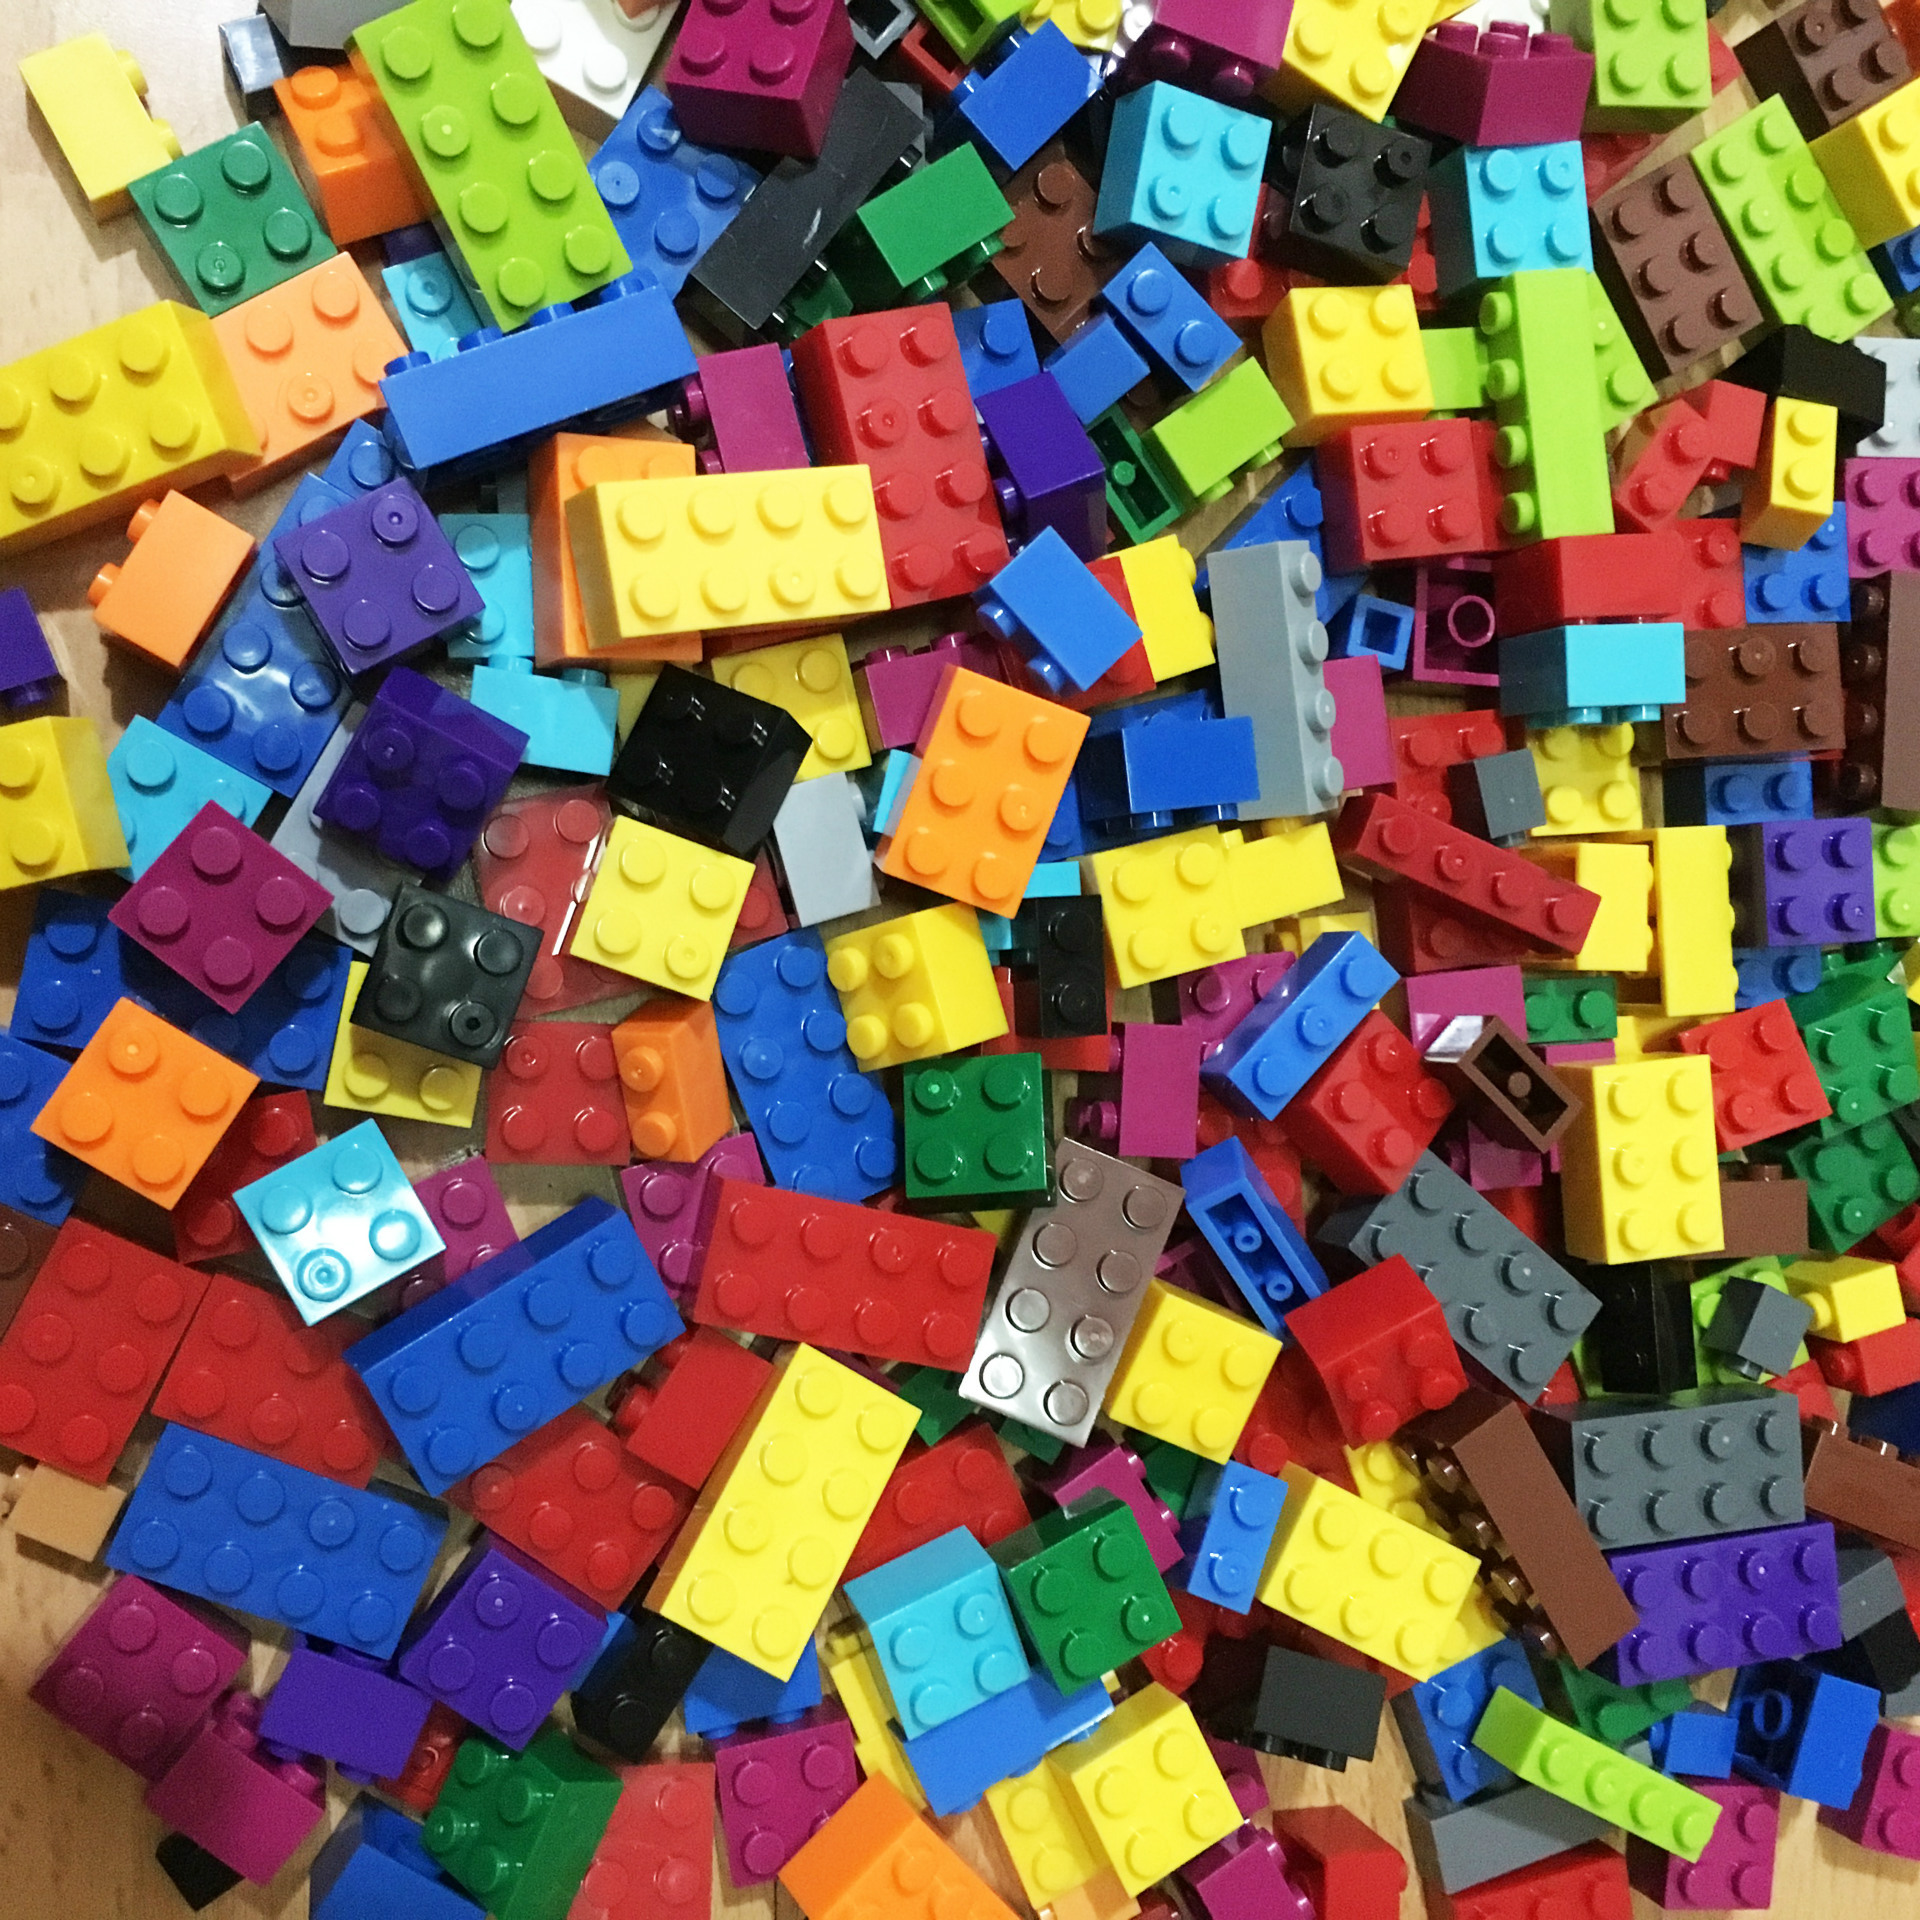 1000Pcs Free Shipping DIY City Building Blocks Bricks Educational Toys Compatible with LegoINGl Bricks Mini LegoINGL Duplo diy building blocks 1000pcs creative bricks toys for children educational compatible bricks with lxgo compatible free shipping